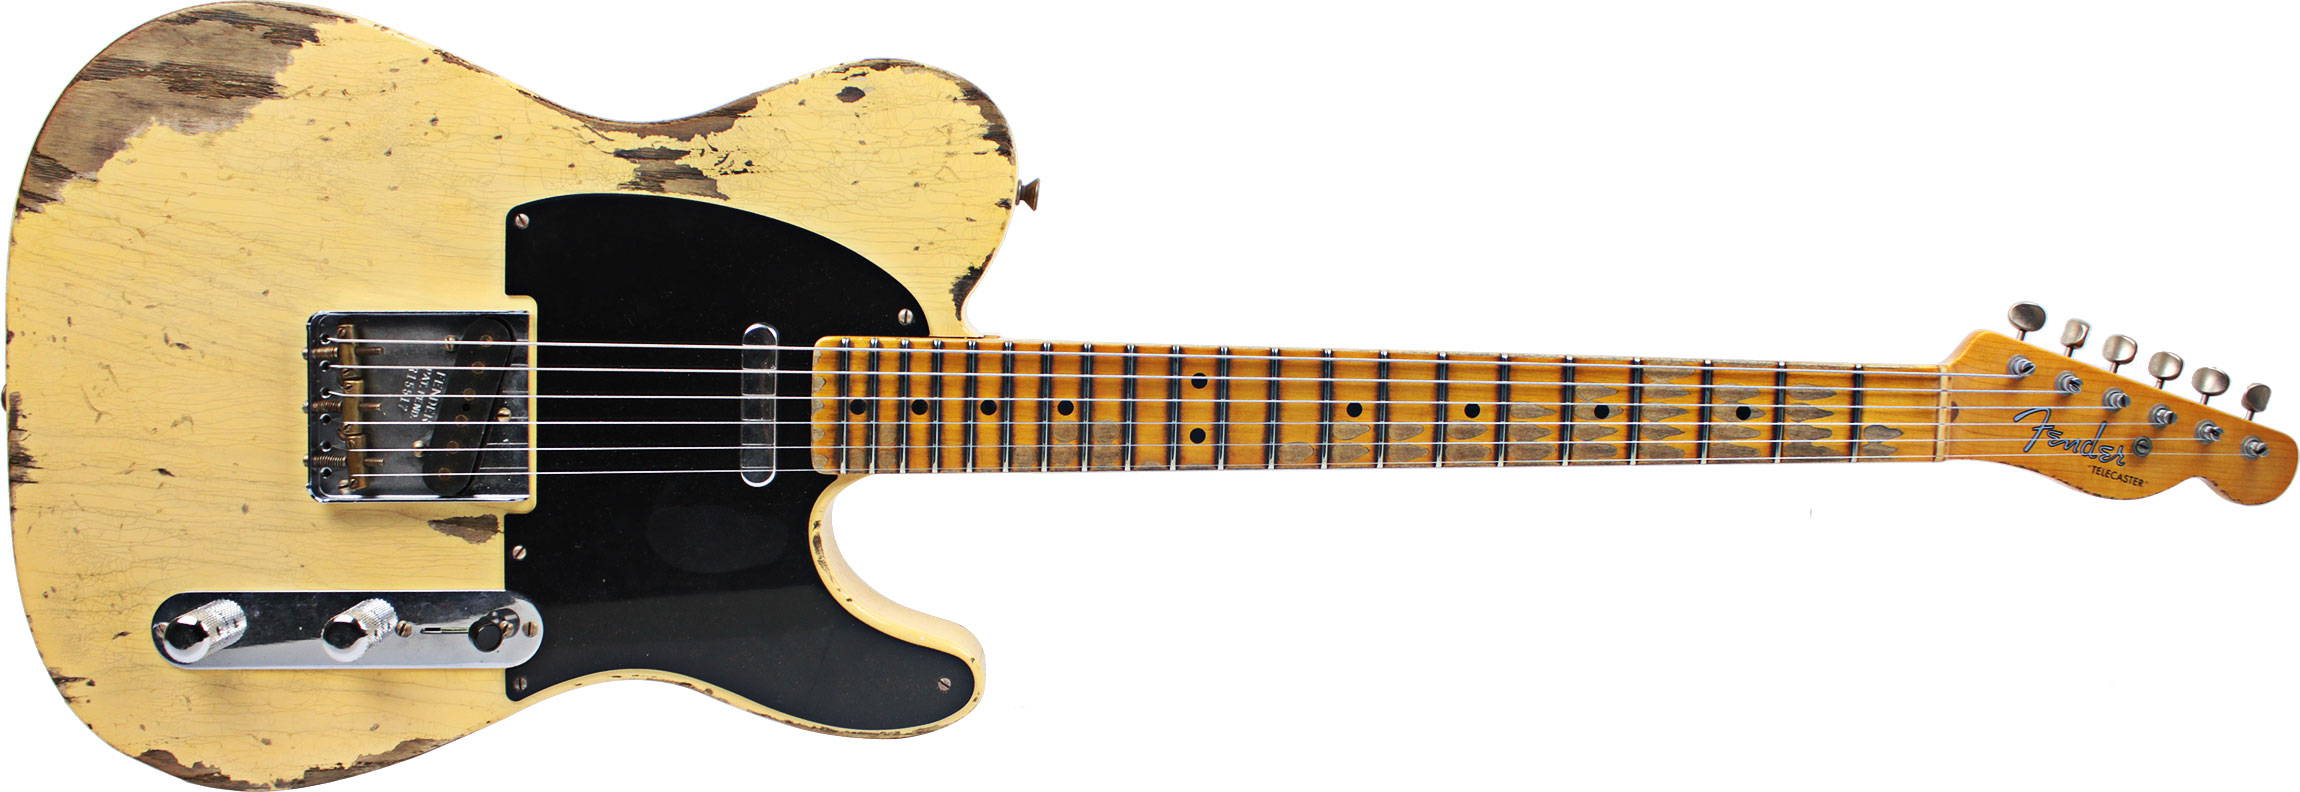 GUITARRA FENDER 51 TELECASTER HEAVY RELIC TIME MACHINE 155-0512-899 FADED NOCASTER BLONDE